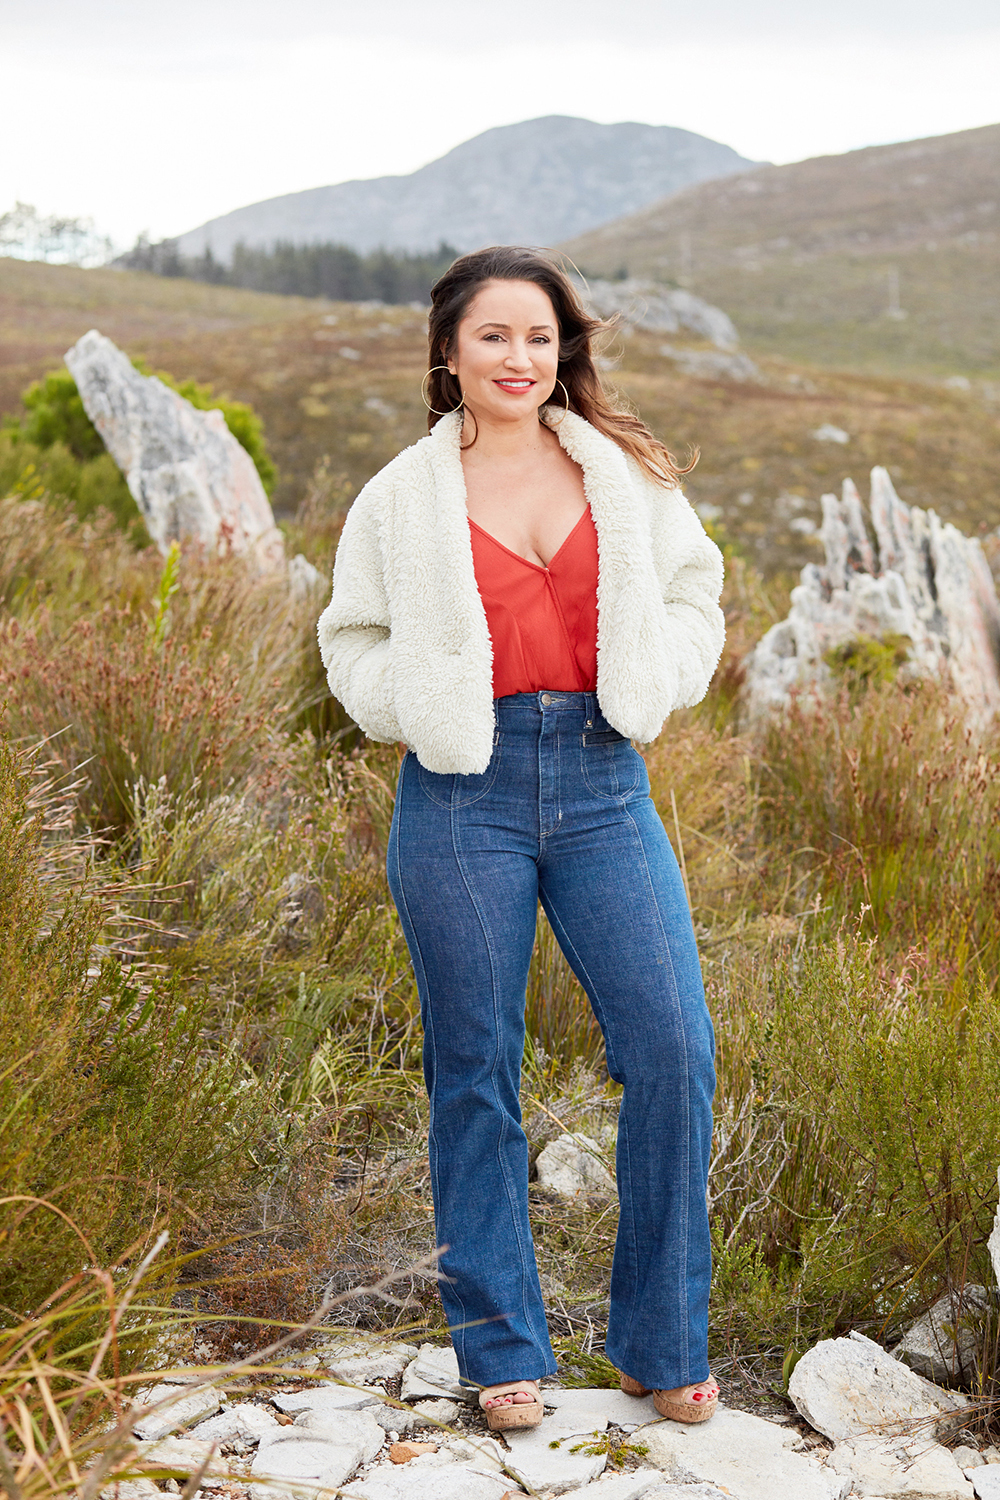 Veronica Portillo | The Challenge Wiki | FANDOM powered by Wikia